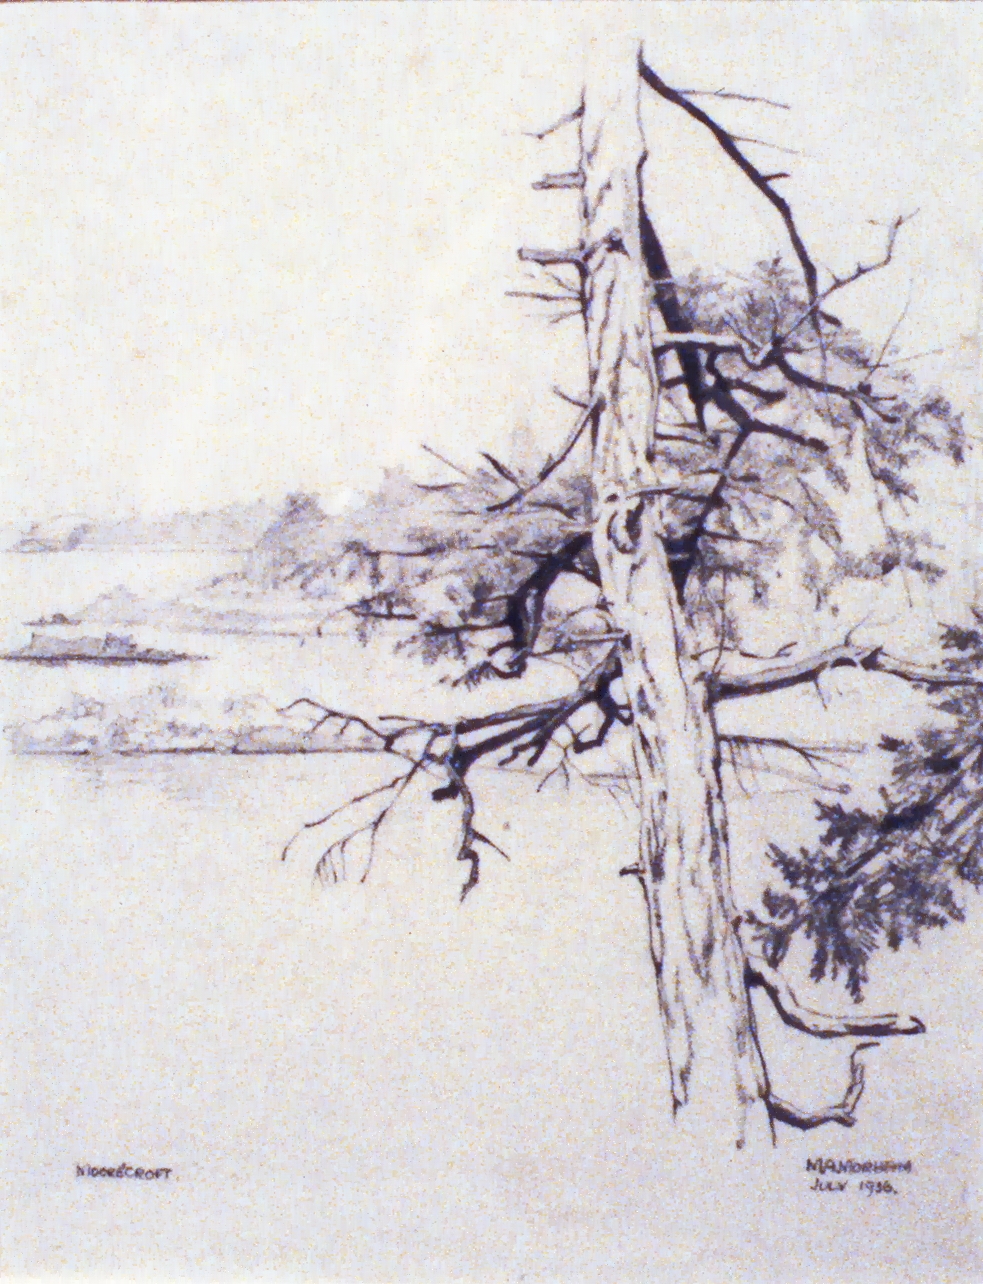 Moorecroft , 1936, Marion Morham Grigsby, pencil on paper, 27.9 x 43.5 cm, 1980.04.06. Anonymous gift.